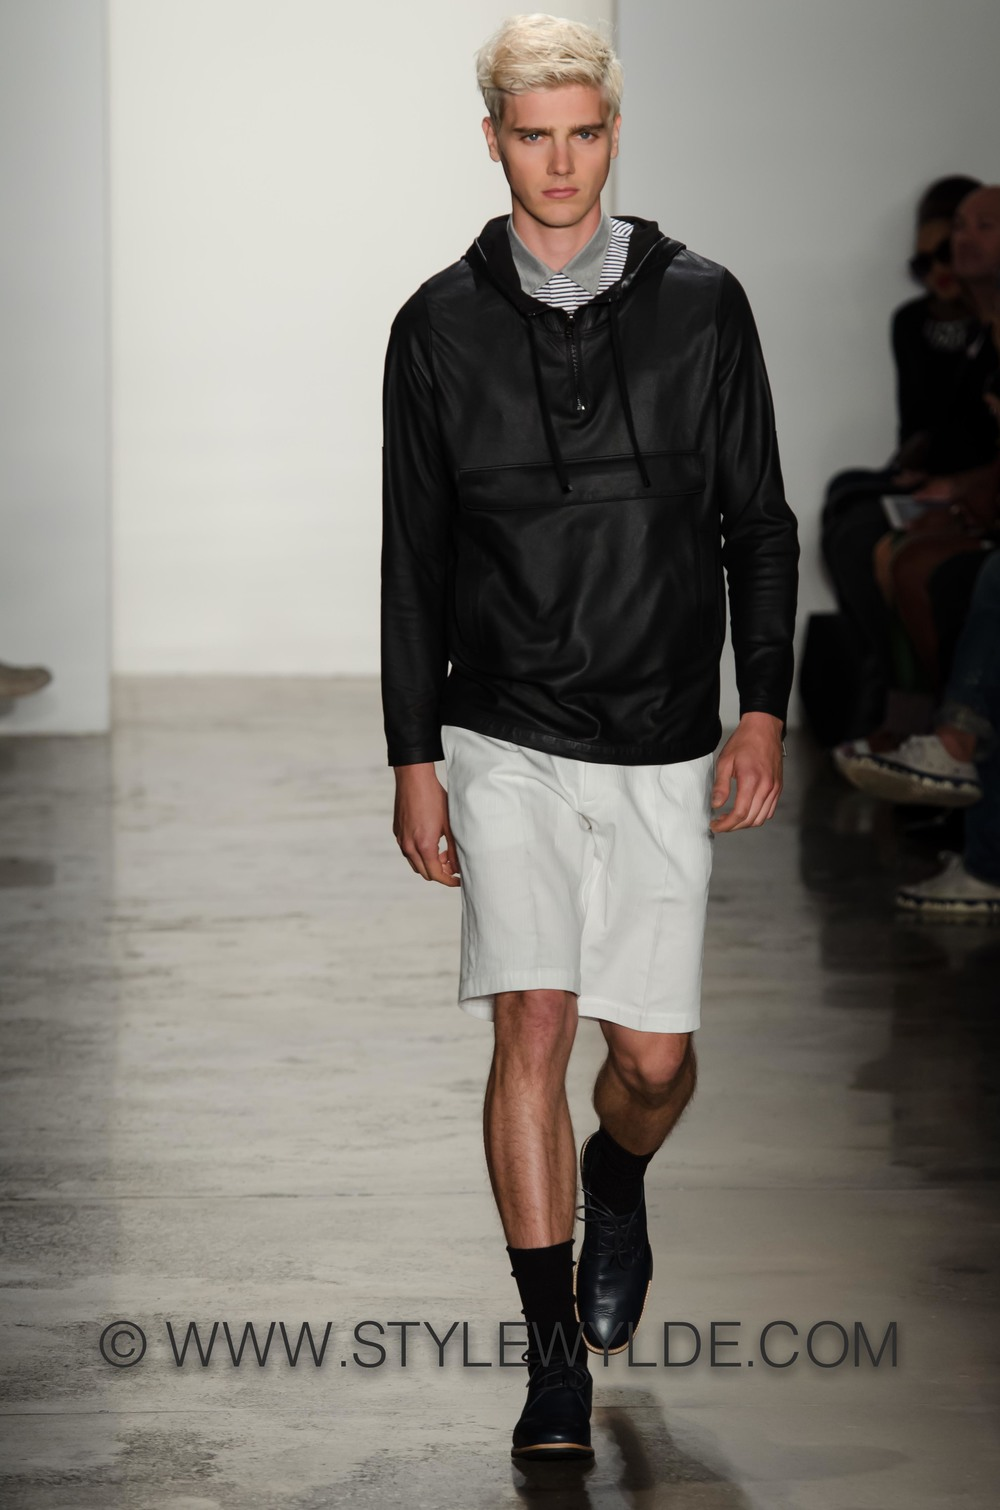 stylewylde_timo_weiland_gallery_ss2014-9.jpg